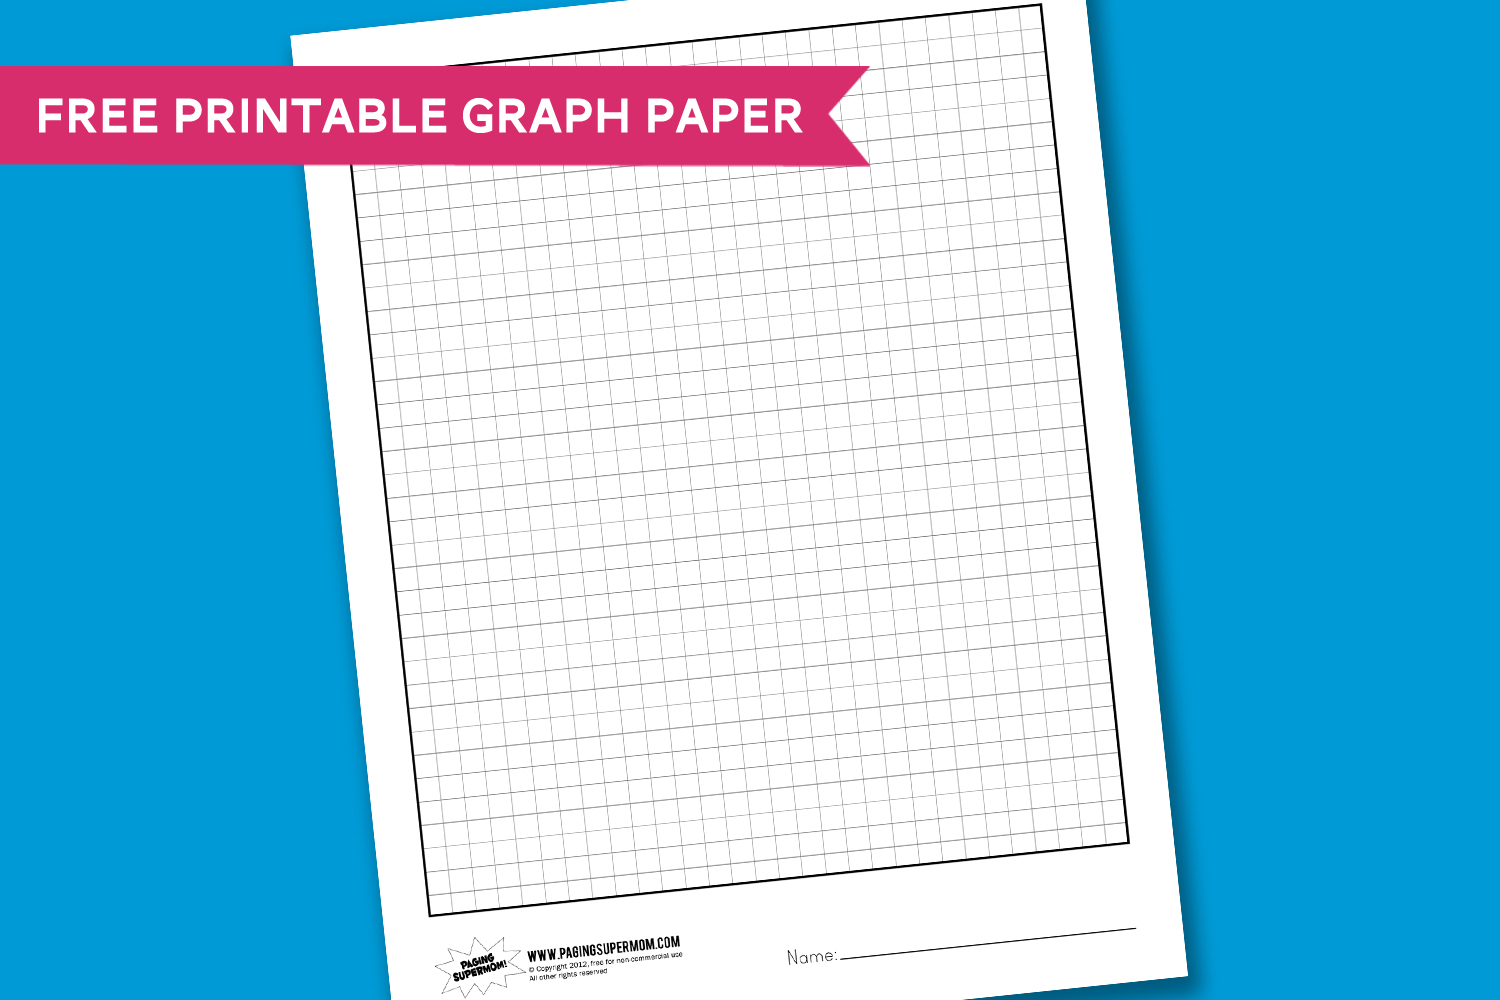 Worksheet Wednesday: Graph Paper | Glam | Pinterest | Graph Paper - Free Printable Graph Paper For Elementary Students